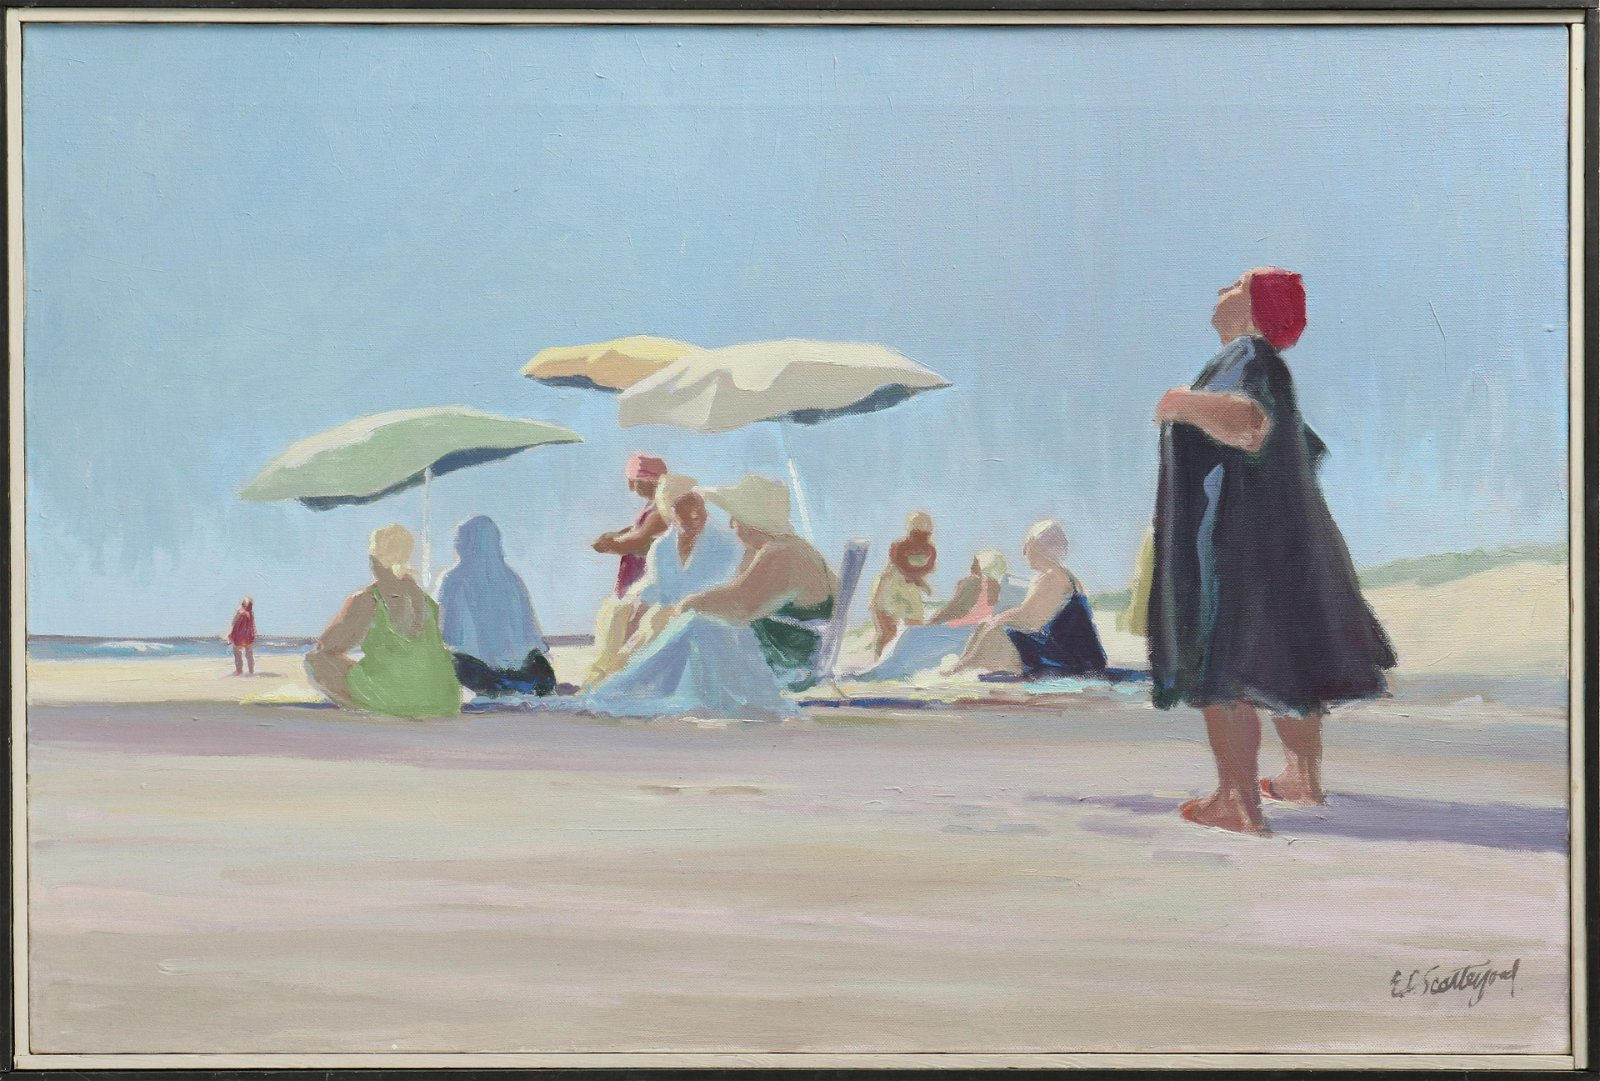 Edward Scatter-Good Beach w Figures Oil on Canvas